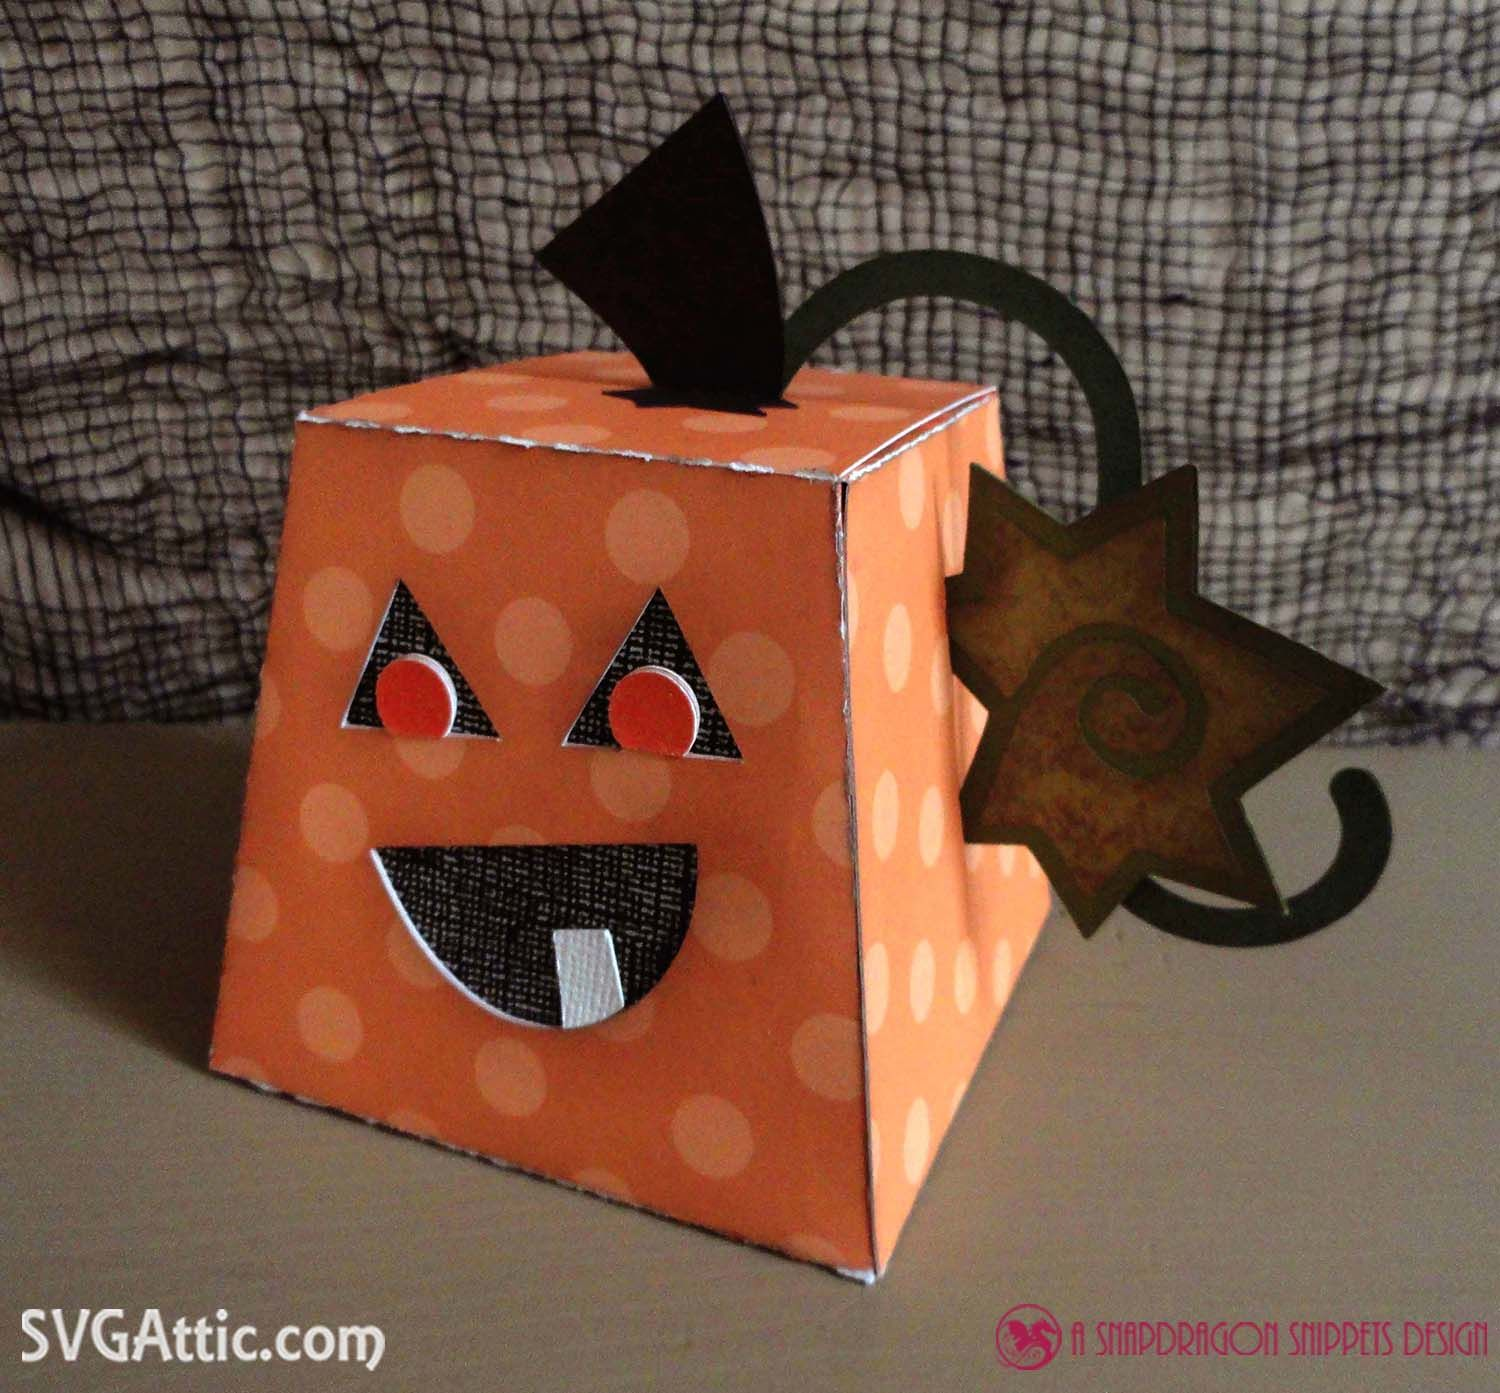 3D paper trapezoid pumpkin treat box svg file from SVG